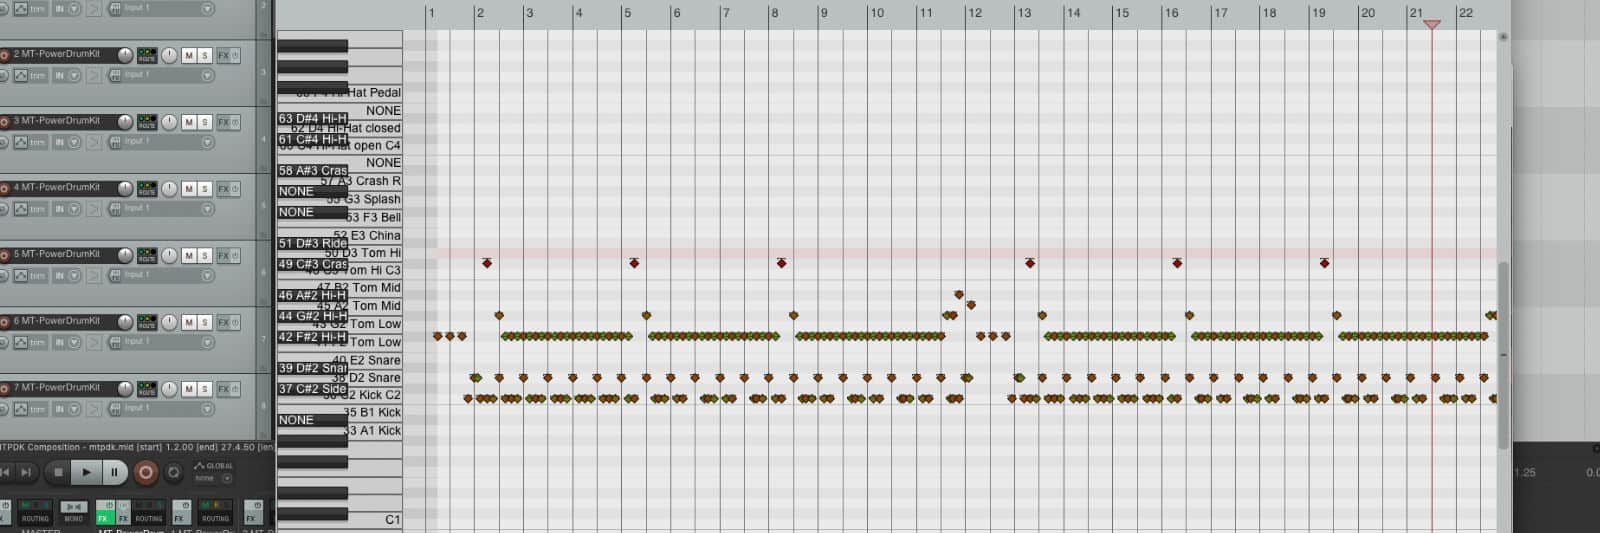 How To Program Your First Drum Track in a DAW: A Step-By-Step Guide